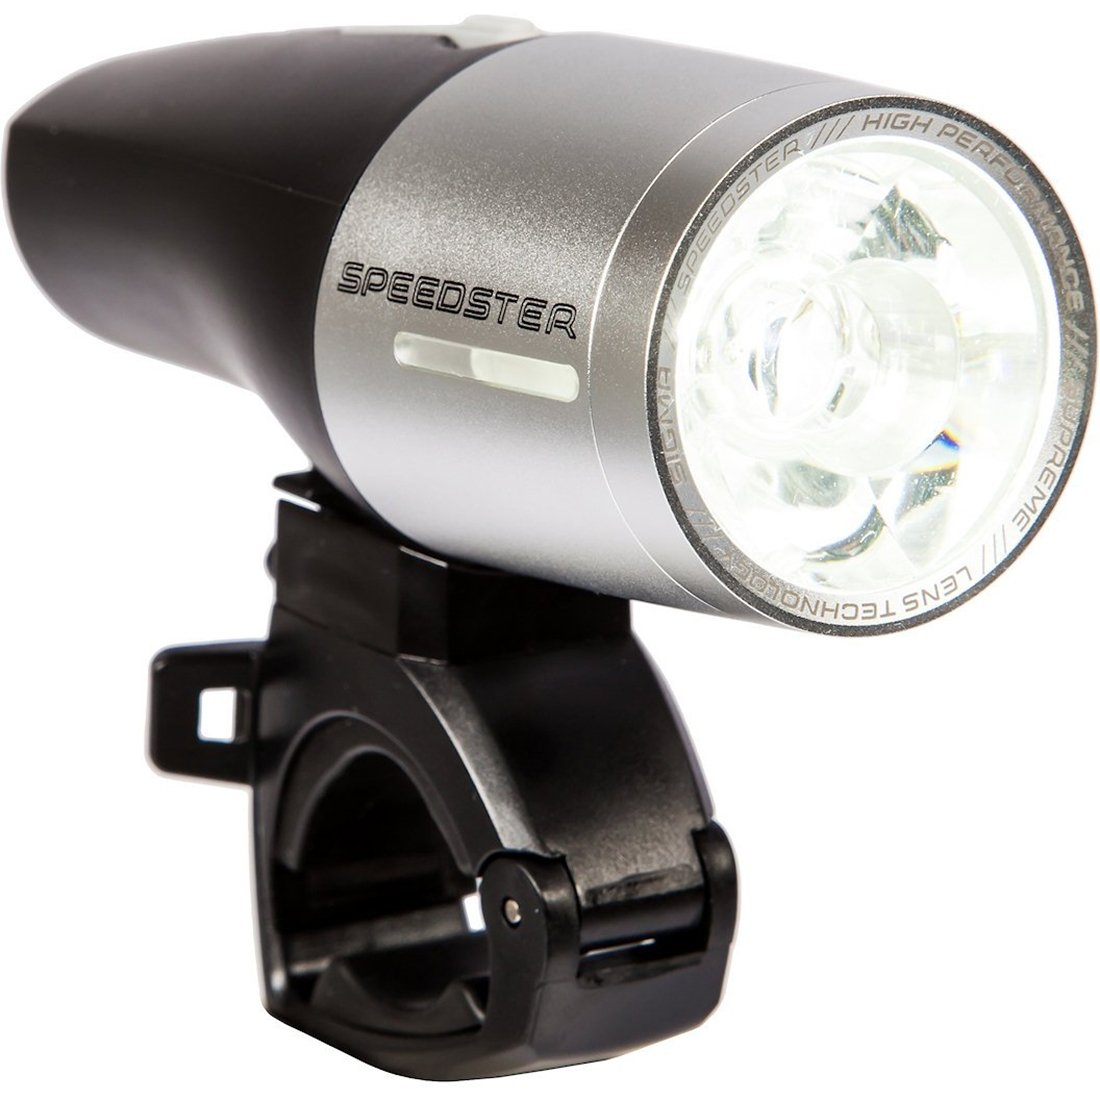 Sigma Sport Speedster Headlight